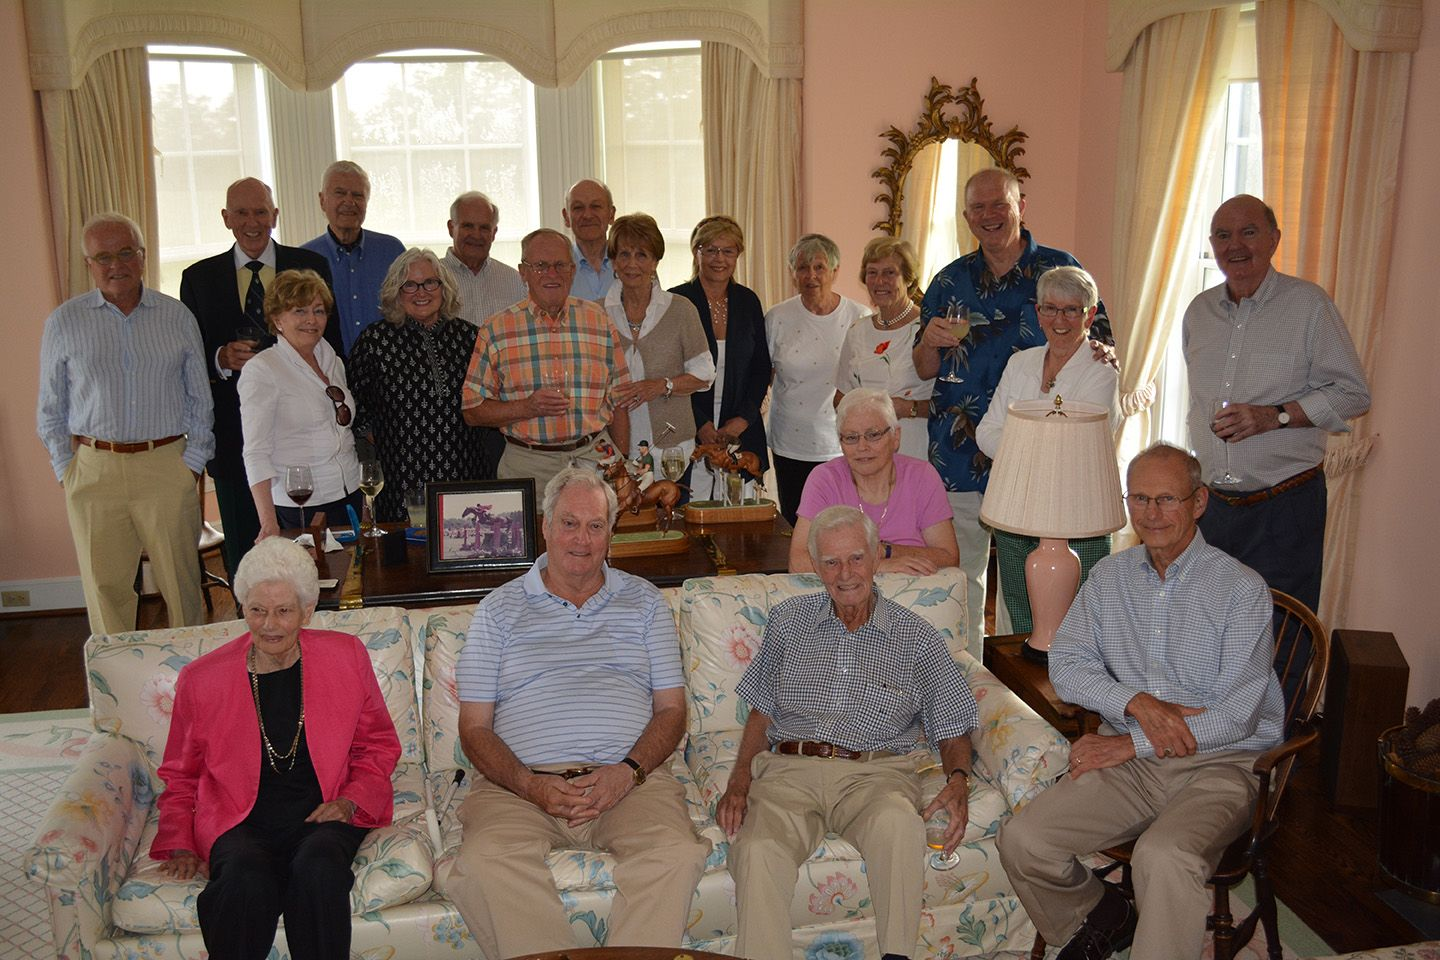 Founding families gather at home of Moffat Dunlap, June 2014